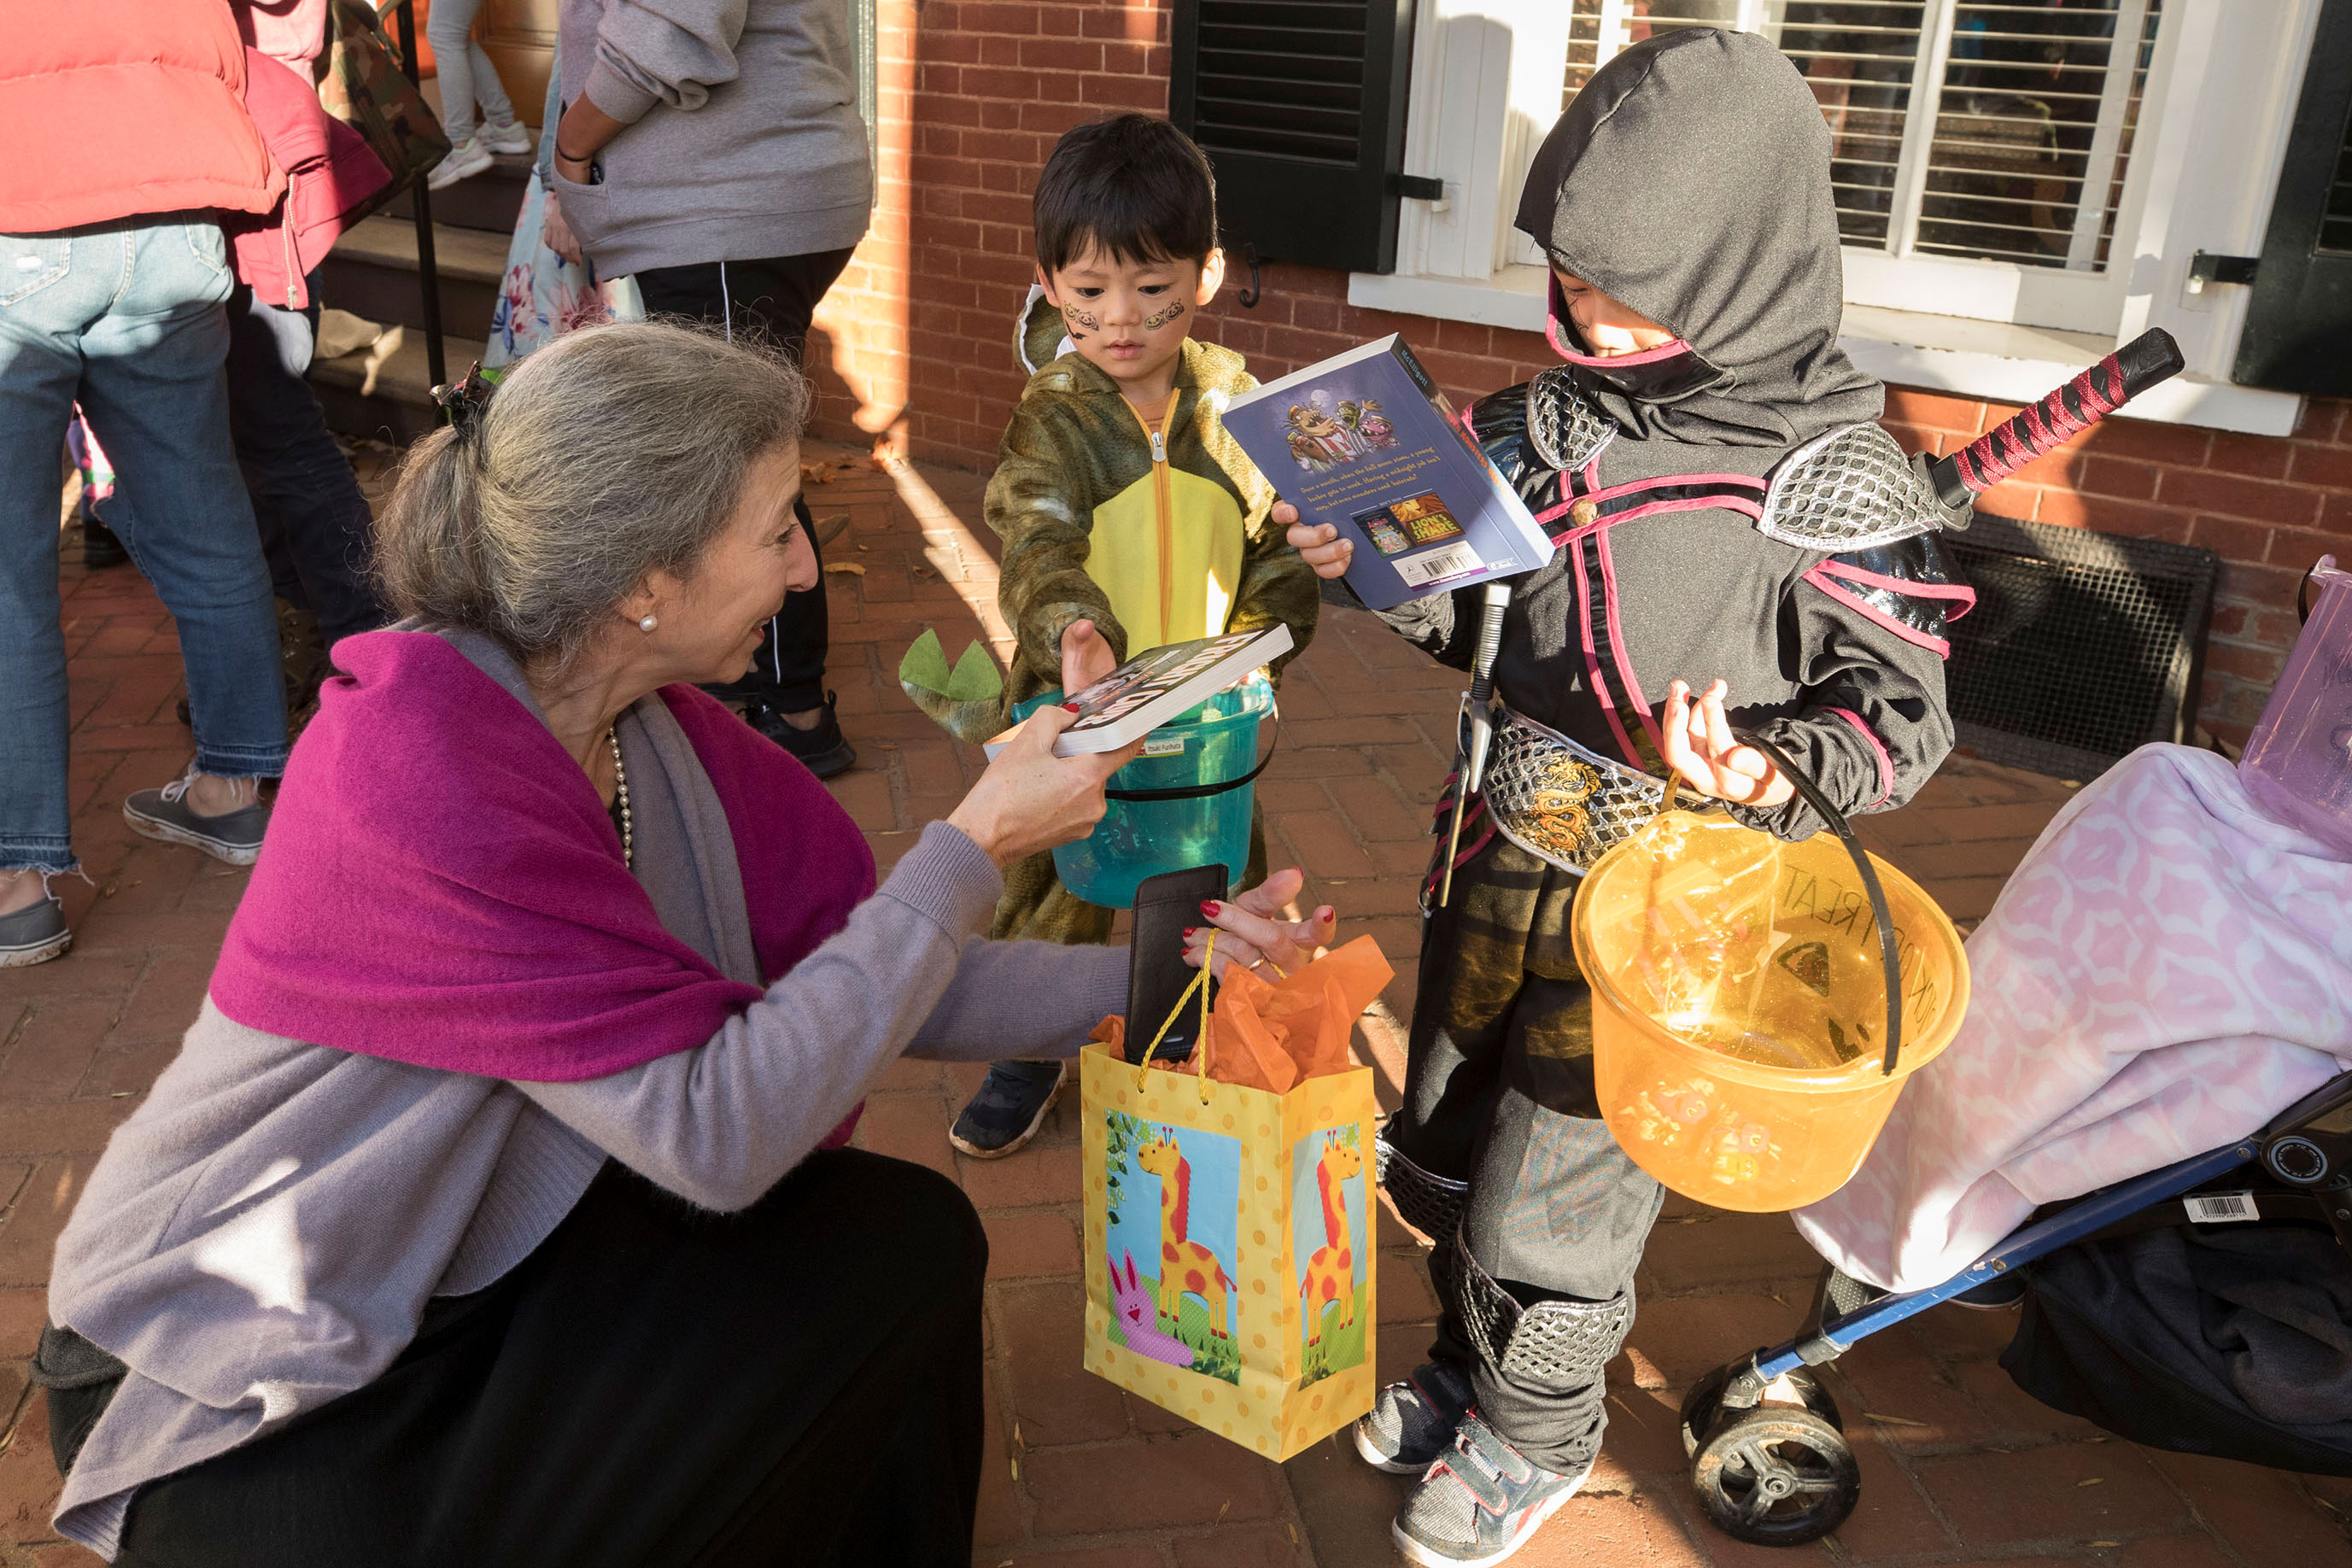 Jeanna Beker founded The Soho Center 48 years ago in New York. She brought it to Madison County 30 years ago when she and her family relocated to Central Virginia. She gave out free books at this year's Trick or Treating on the Lawn.